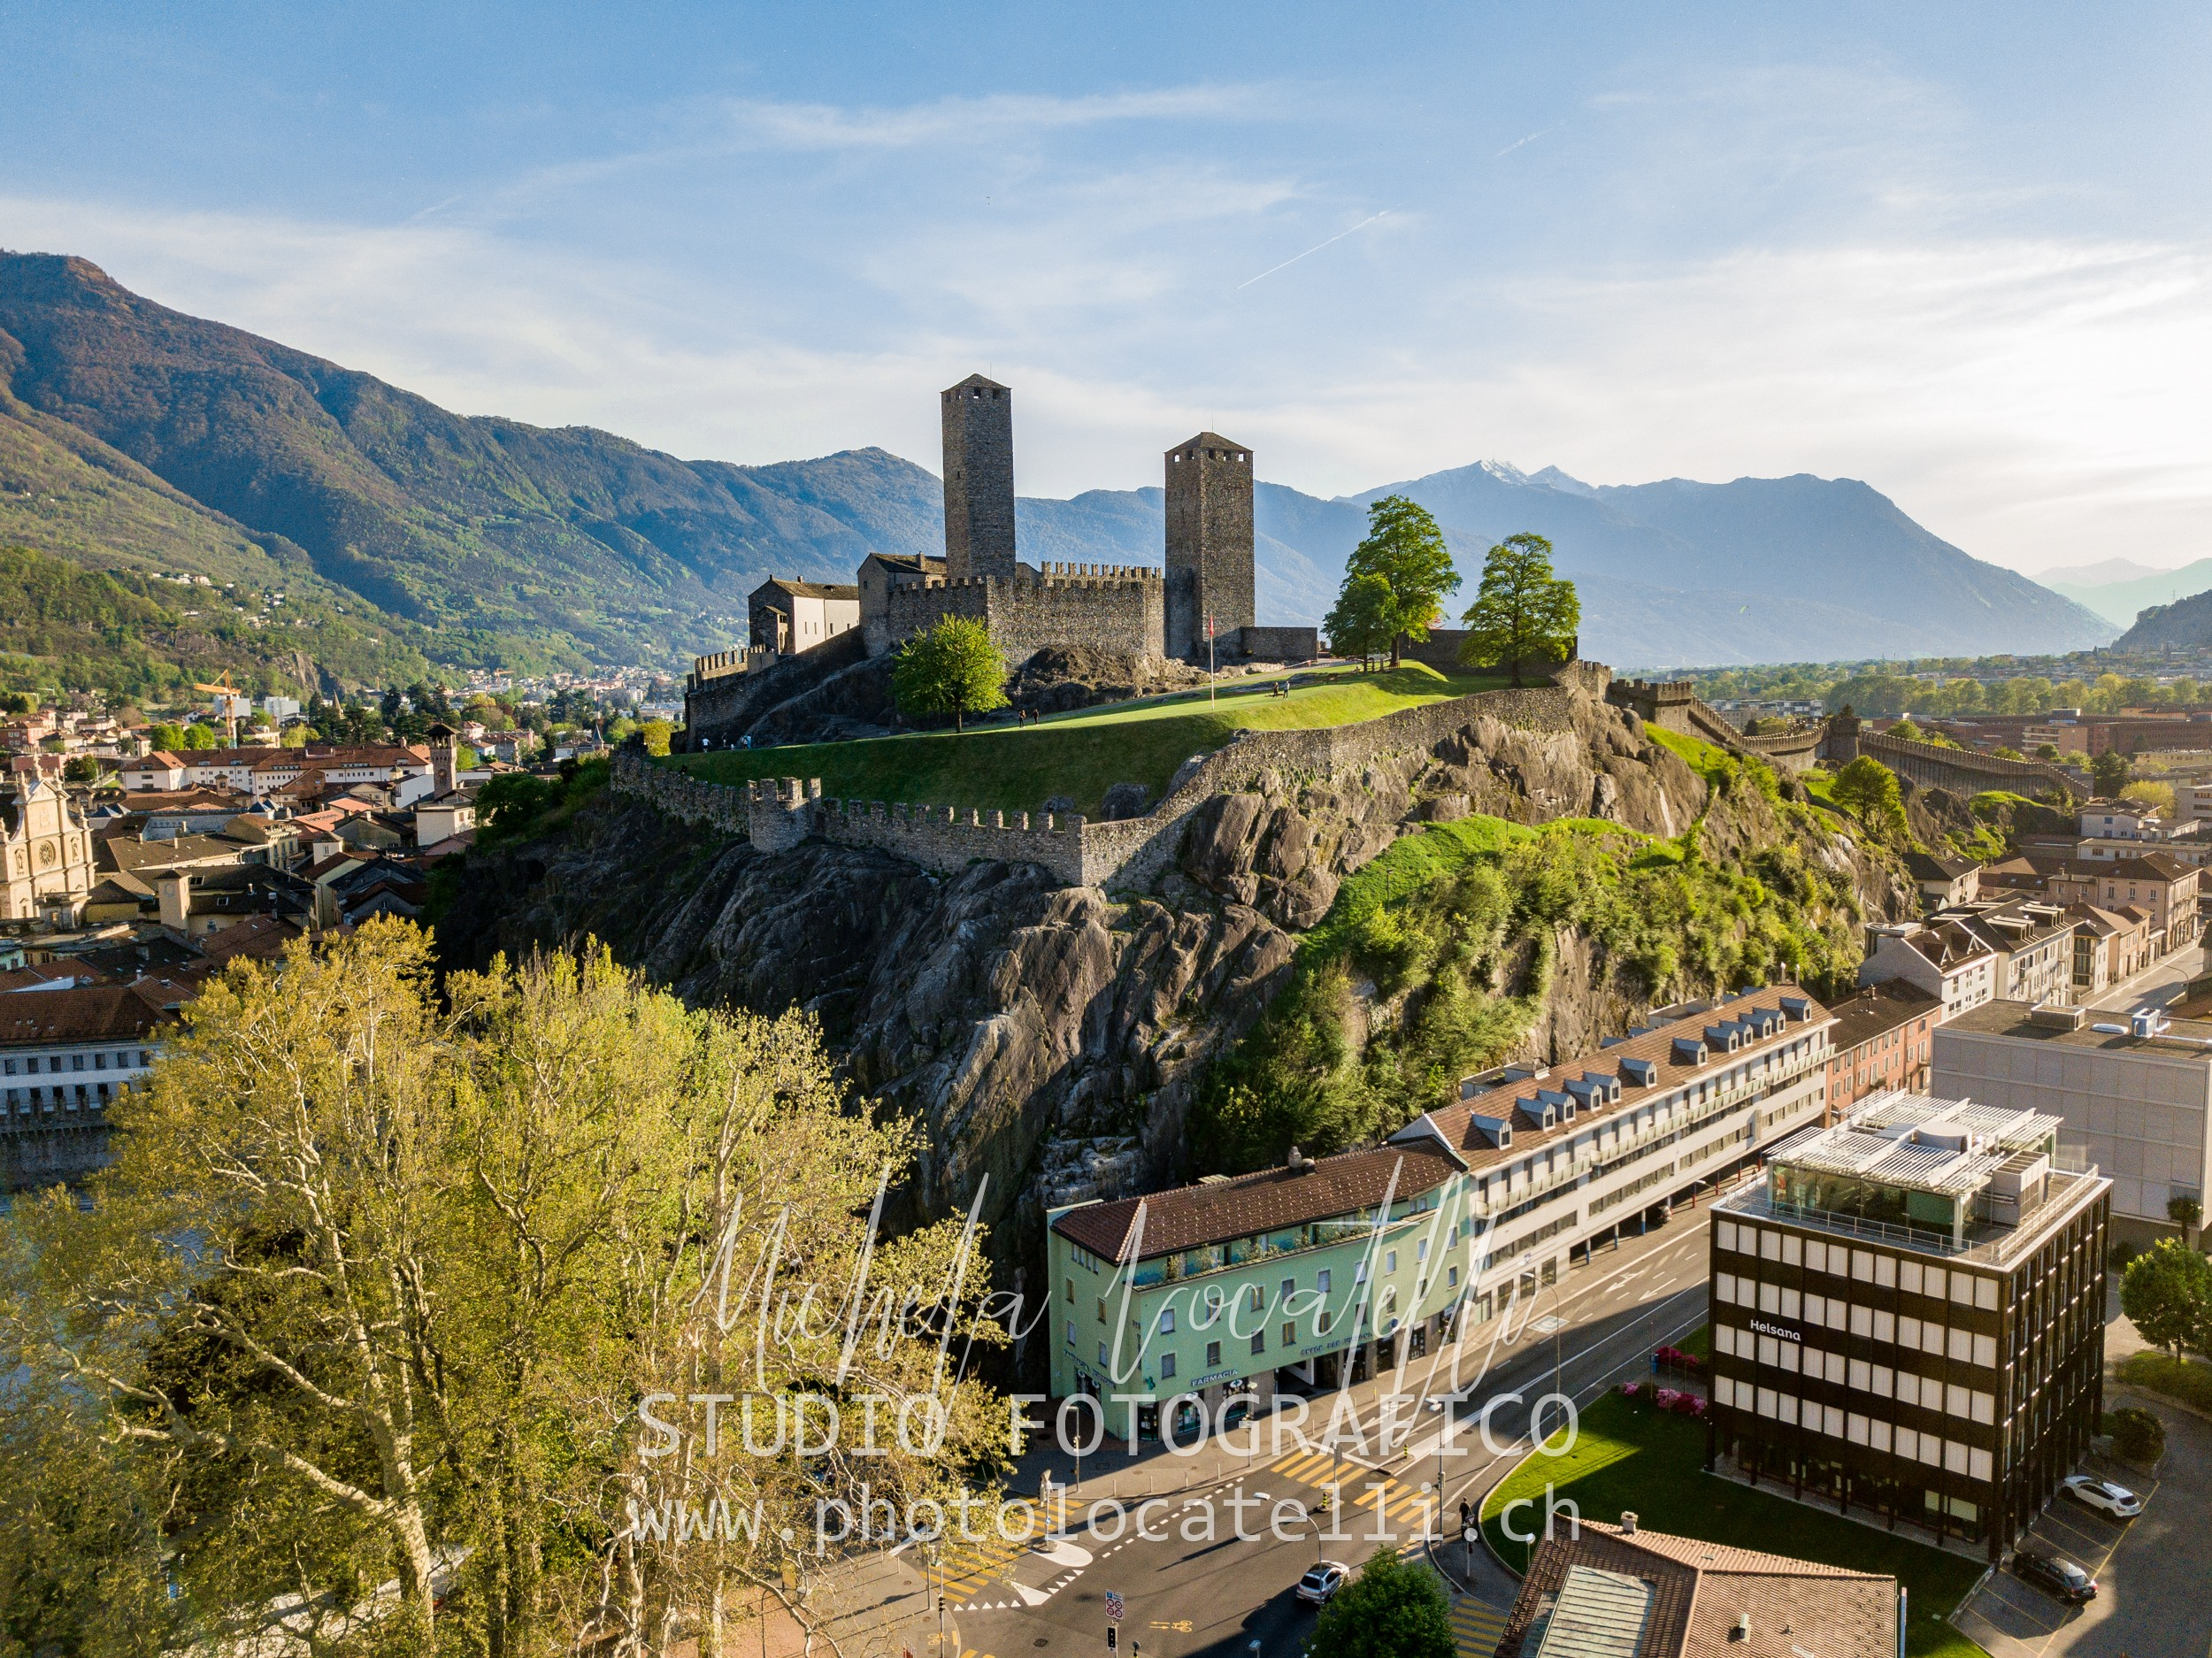 Bellinzona 2019,Bellinzona,Bellinzonese,Landscape,Places,Schweiz,Switzerland,città,city,michela@photolocatelli.ch,paesaggio,palazzo civico,photolocatelli.ch,svizzera,swiss,ticino,ticino turismo,